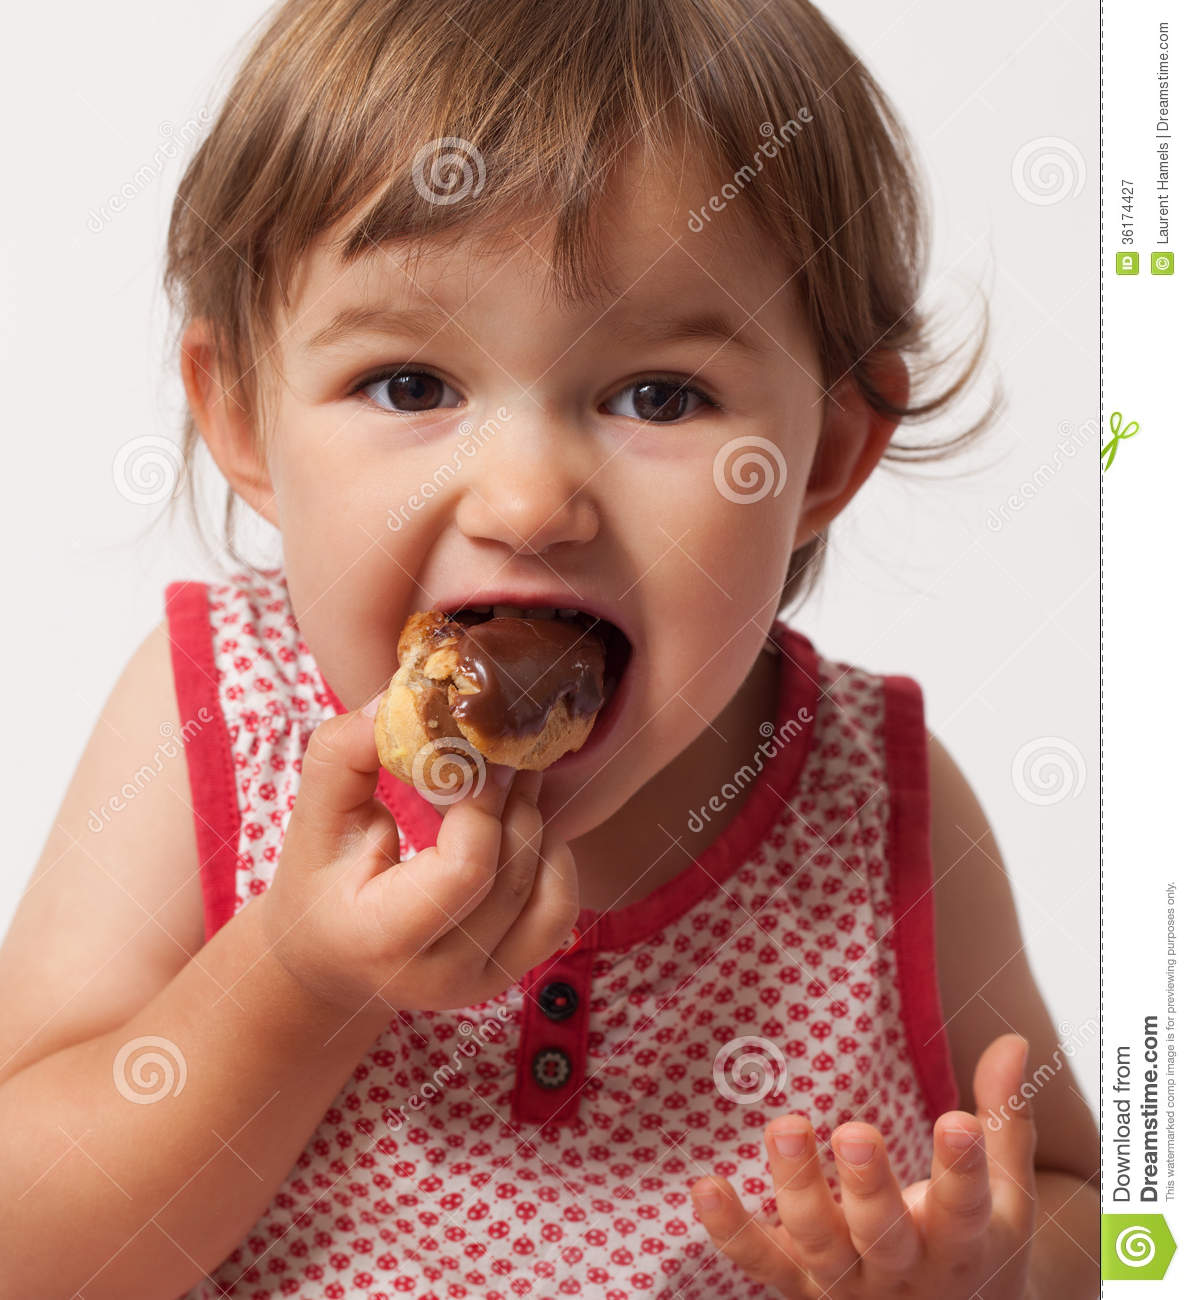 Baby Only Eats Sweet Food Child Gluttony For Chocolate Food Royalty Free Stock